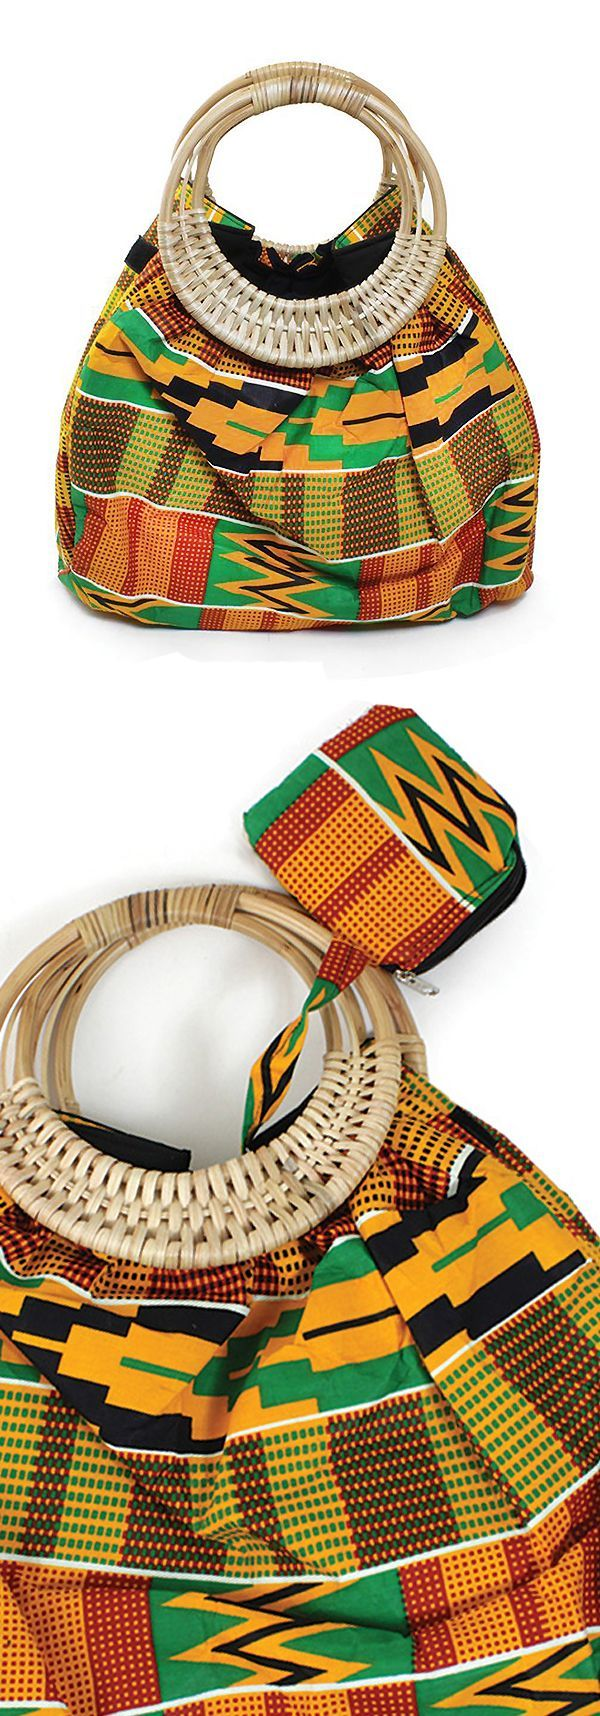 Colors Of Ghana Kente Purse - Celebrate African culture and history with this beautiful purse made in Ghana with traditional African patterns.  Each purse is handmade by African artisans and displays the bold and bright colors of the Ghana people: yellow, green, red, orange, and black.  This handbag is perfect as a gift, or keep it for yourself!  #handbag #purse #africa #african #africanfashion #blackhistorymonth #ghana #jamaican #jamaica #pattern #surfacedesign #dressup